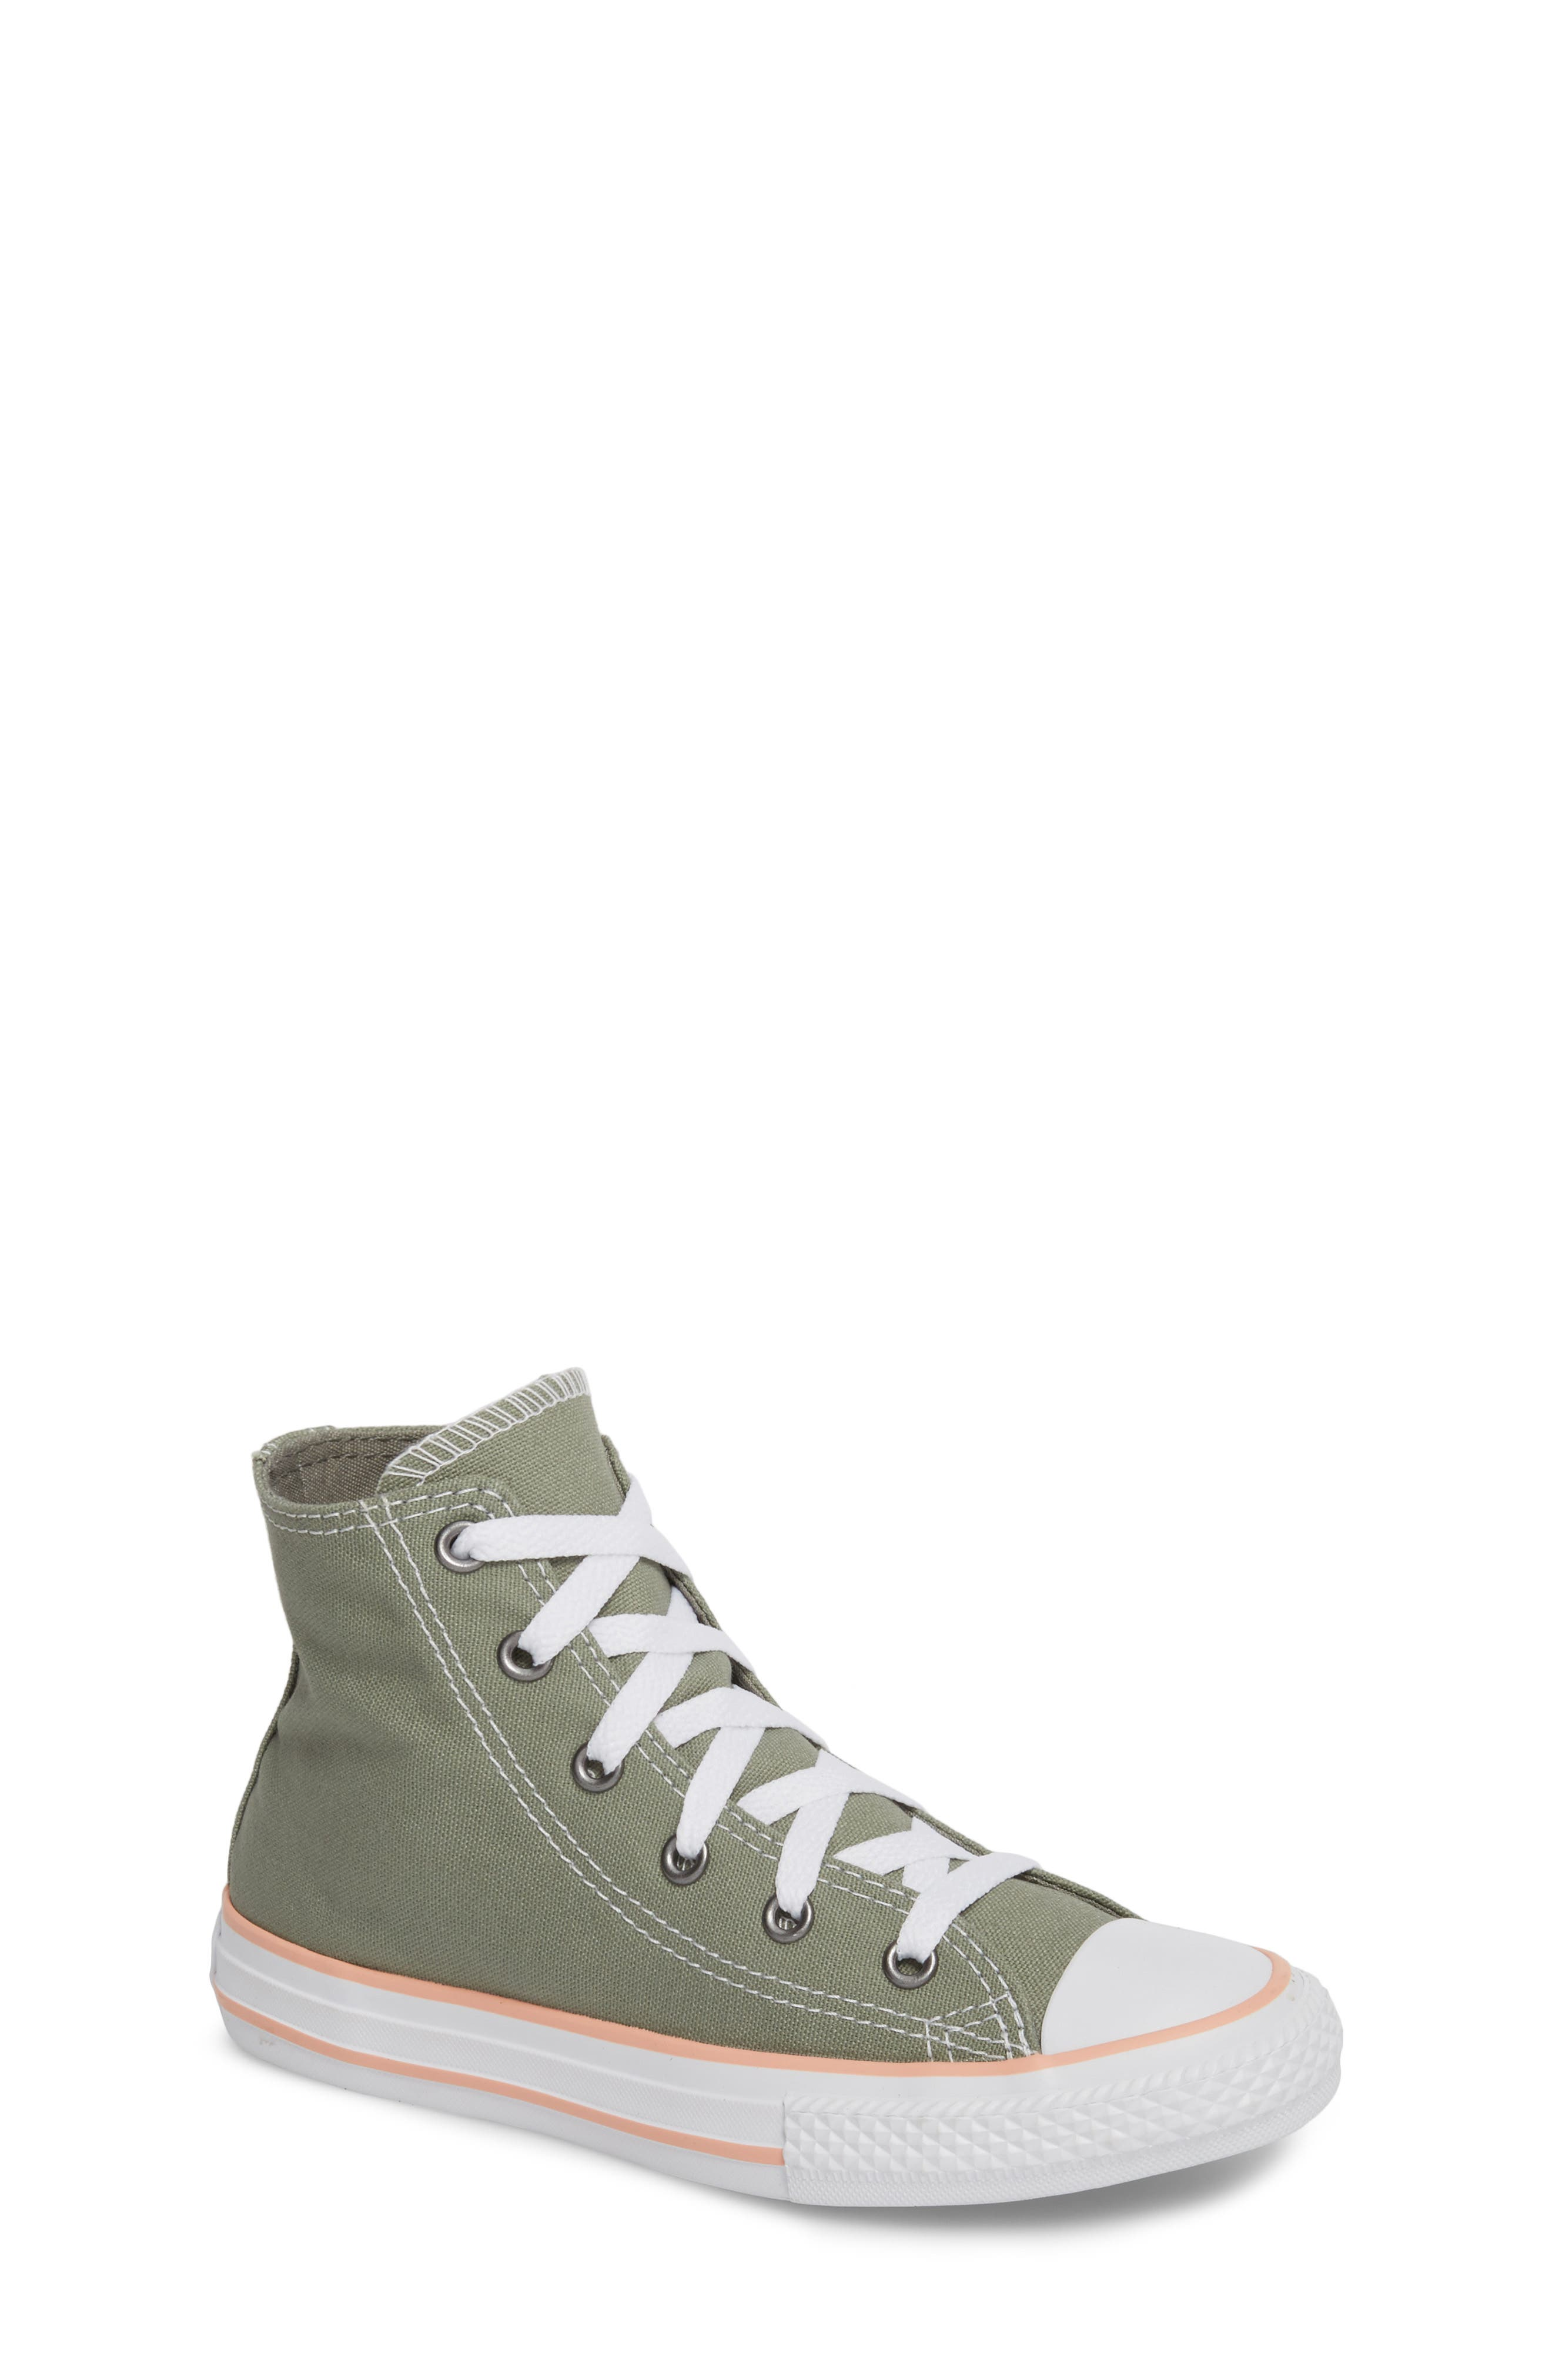 Main Image - Converse Chuck Taylor® All Star® High Top Sneaker (Baby, Walker, Toddler, Little Kid & Big Kid)